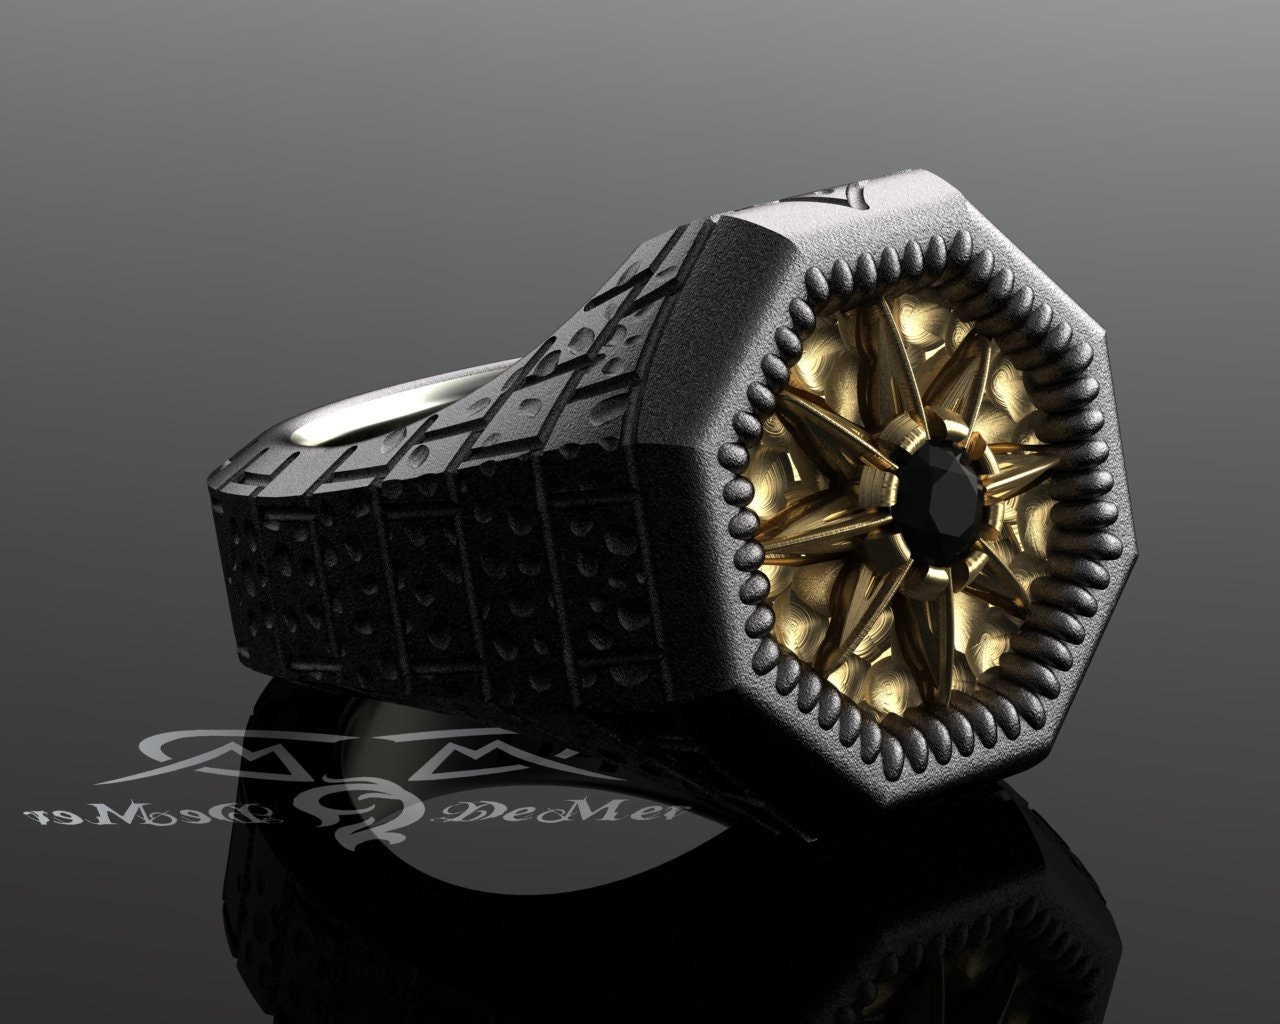 North star compass rose black diamond ring Urban explorer